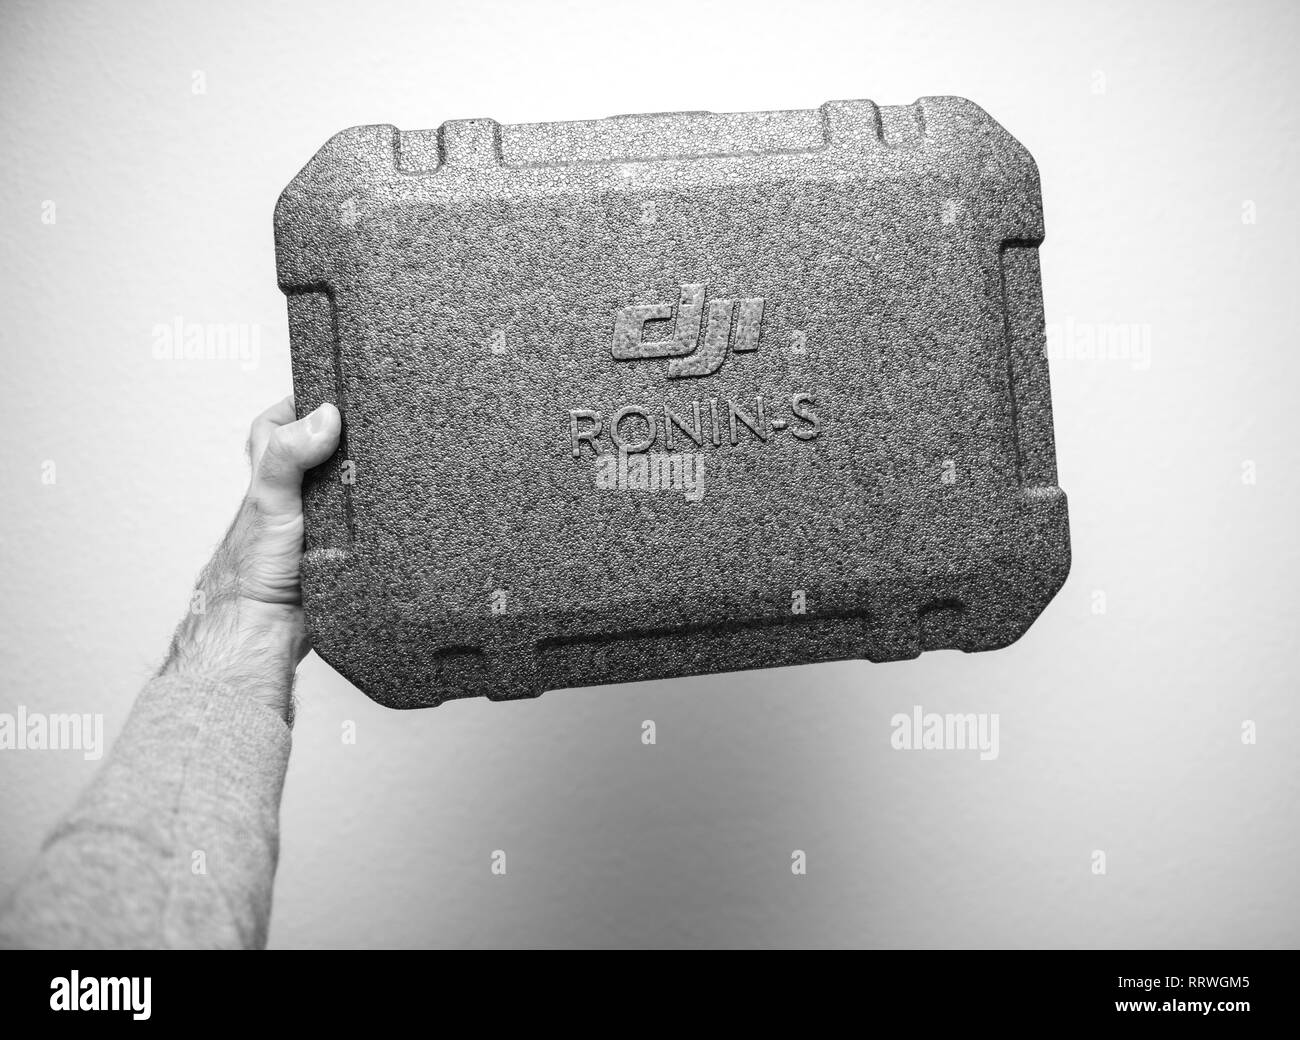 PARIS, FRANCE - NOV 22, 2018: Man hand holding against white background new DJI Ronin S superior 3-axis stabilization system for DSLR and mirrorless camera packaging box - black and white - Stock Image